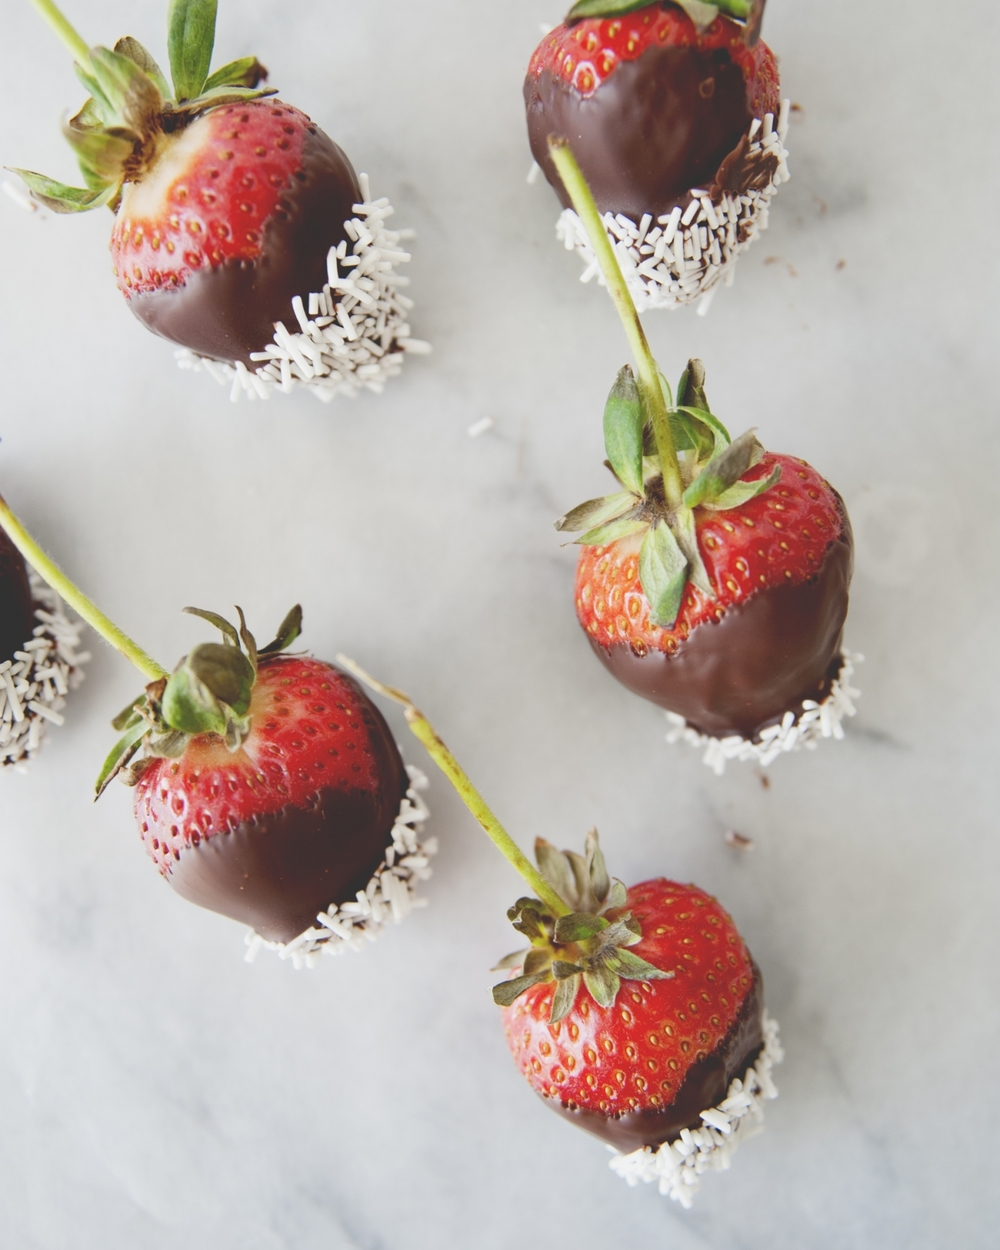 chocolate dipped strawberries with white chocolate sprinkles